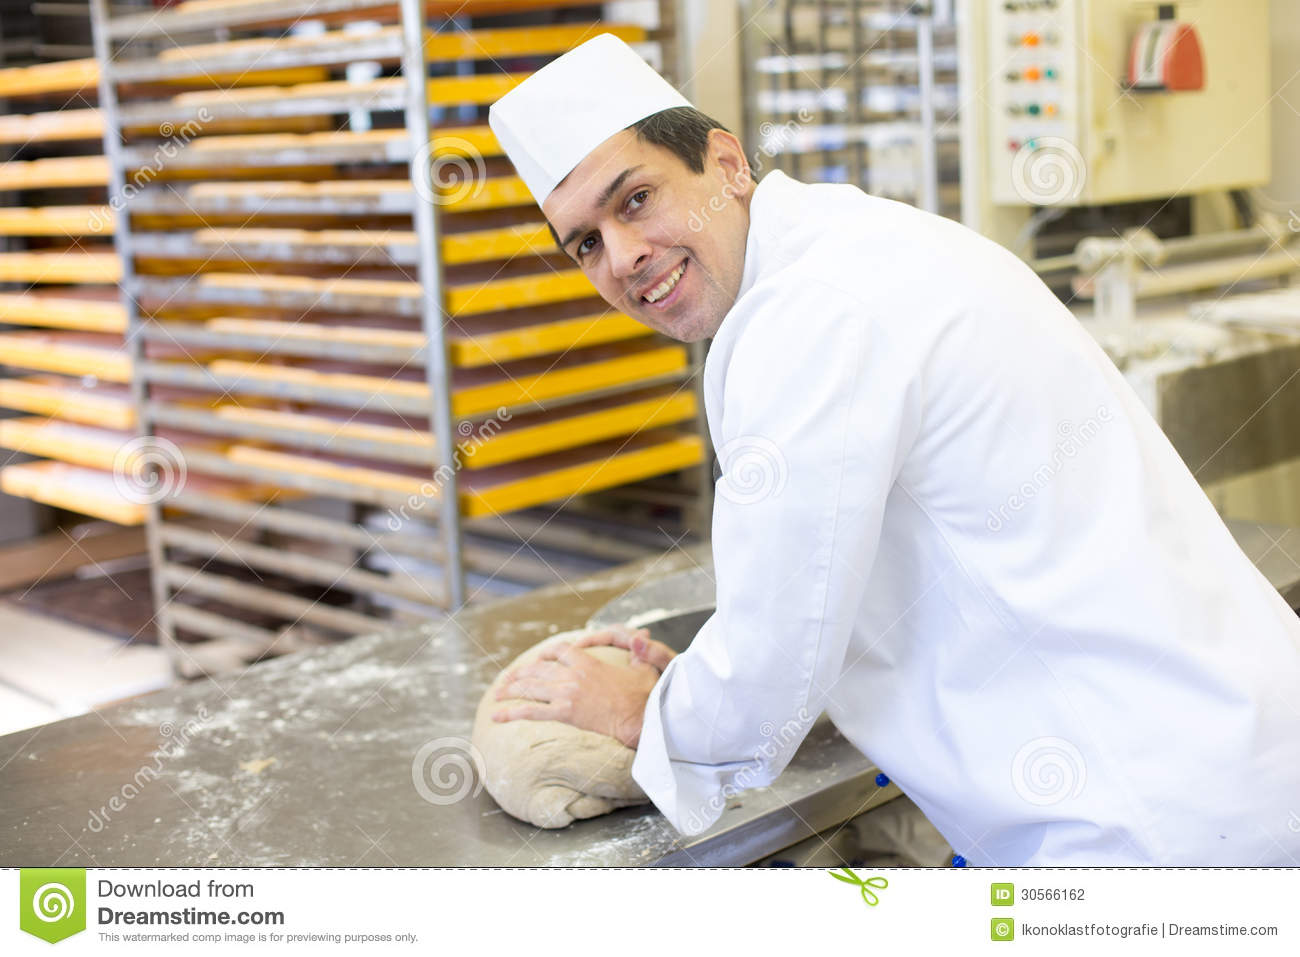 Baker Kneading Dough In Bakery Stock Photo - Image of manufacturing, flavor: 30566162